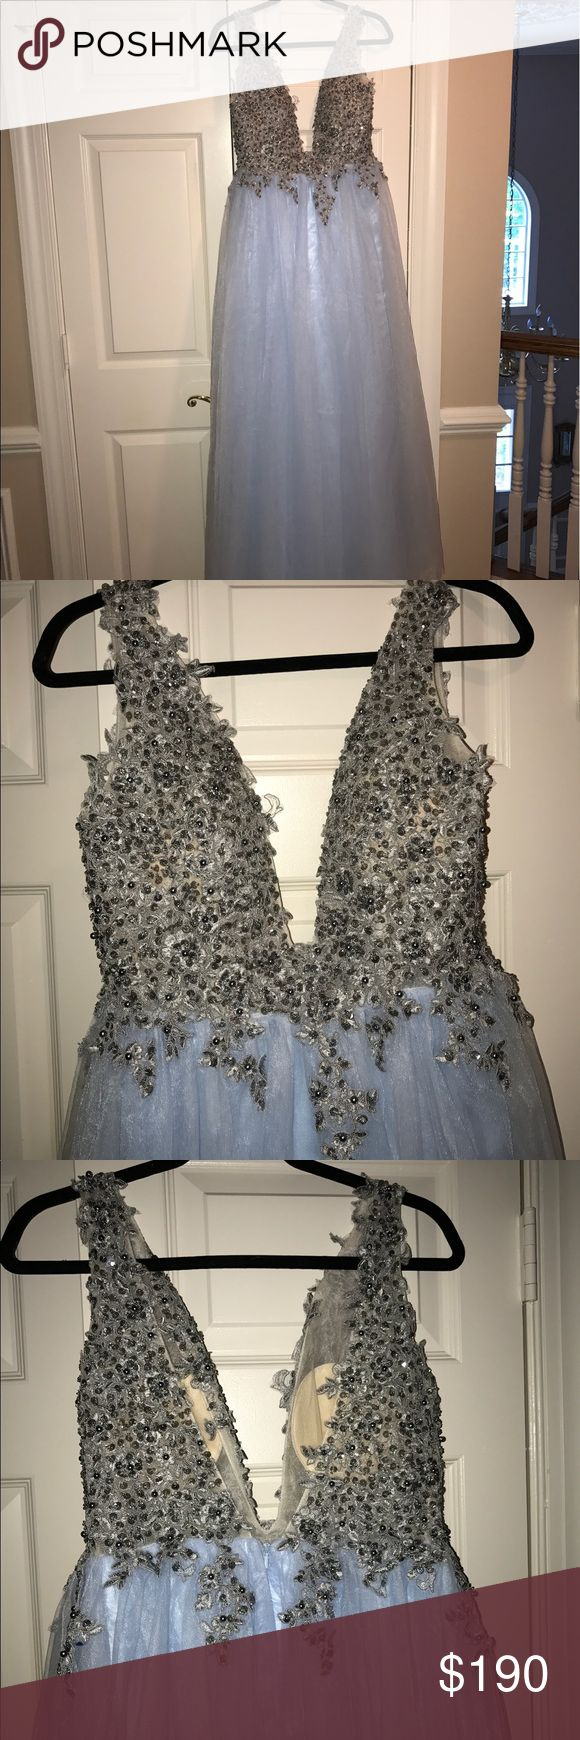 """PROM DRESS never worn! :) Another prom dress! Never worn in great condition, delicate beading and pretty sky blue color! Size 4 (I'm 5'7"""" and 135 lbs and it fits me perfectly, but I found another dress.) selling for a great price! Dresses Prom"""